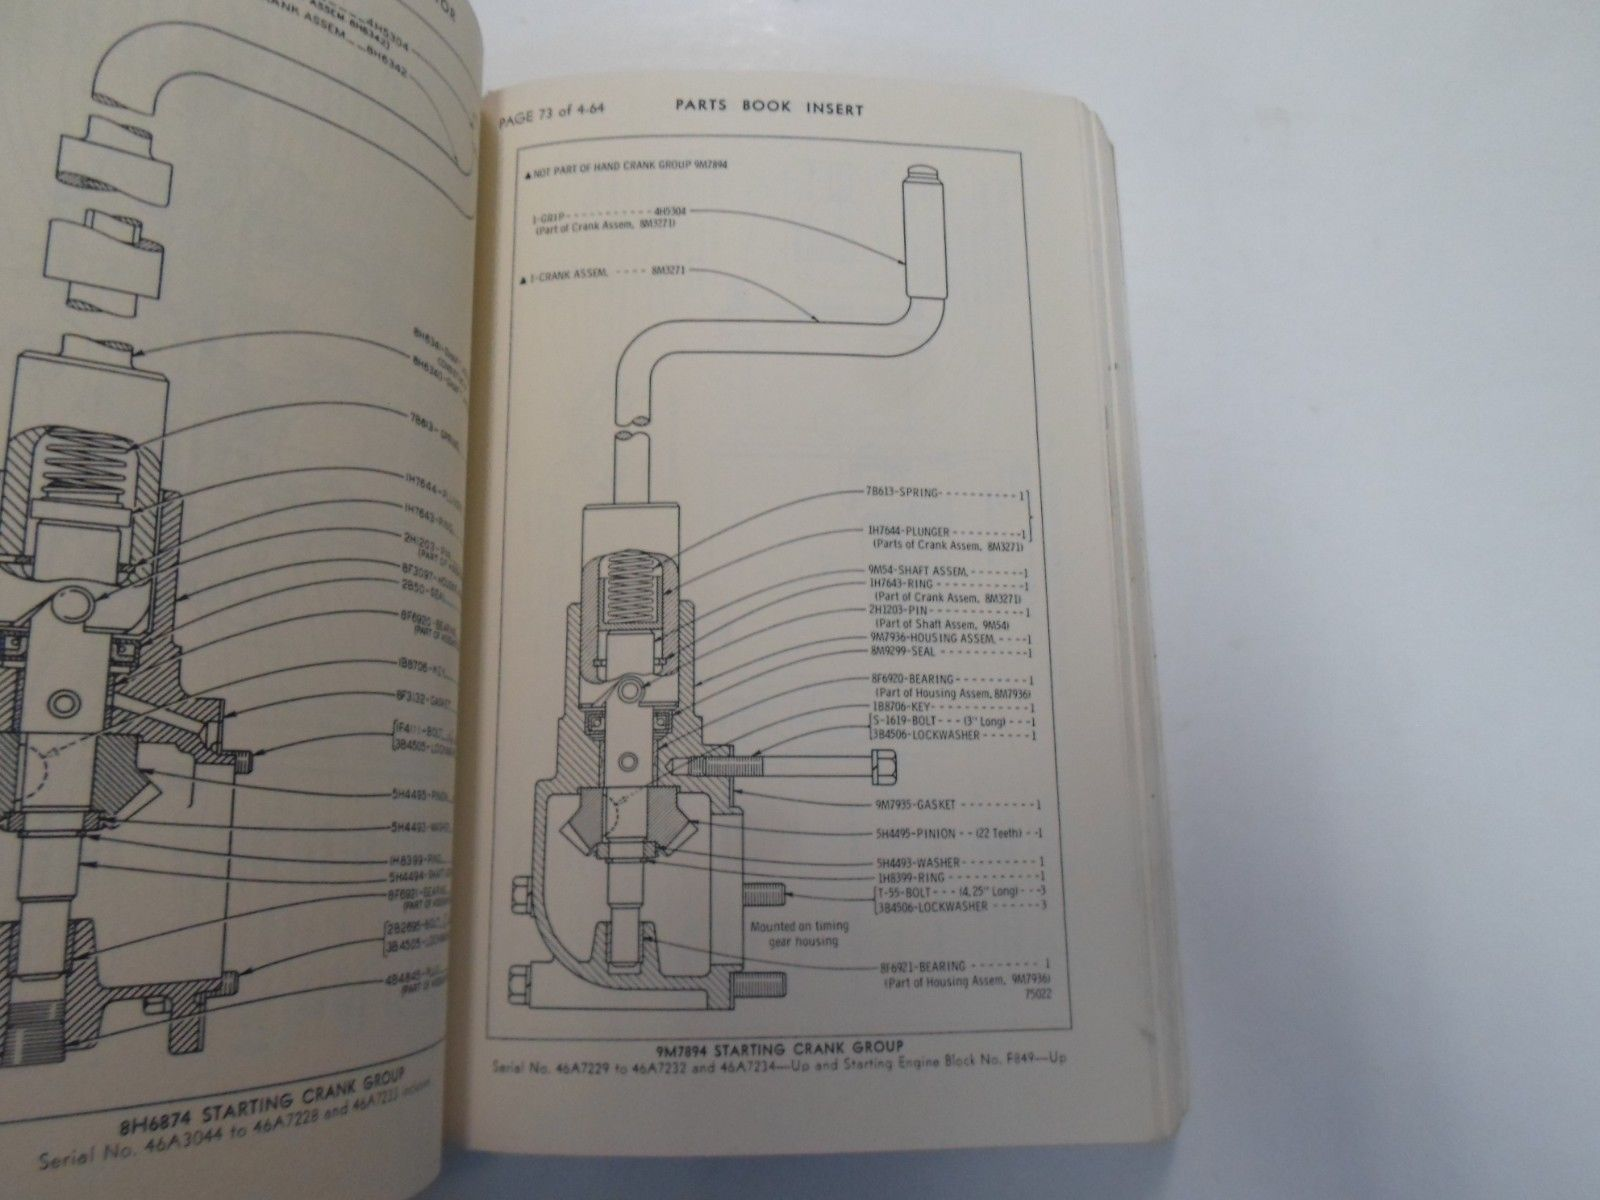 hight resolution of caterpillar d8 tractor power shift parts book manual 46a3044 to 46a10724 stain